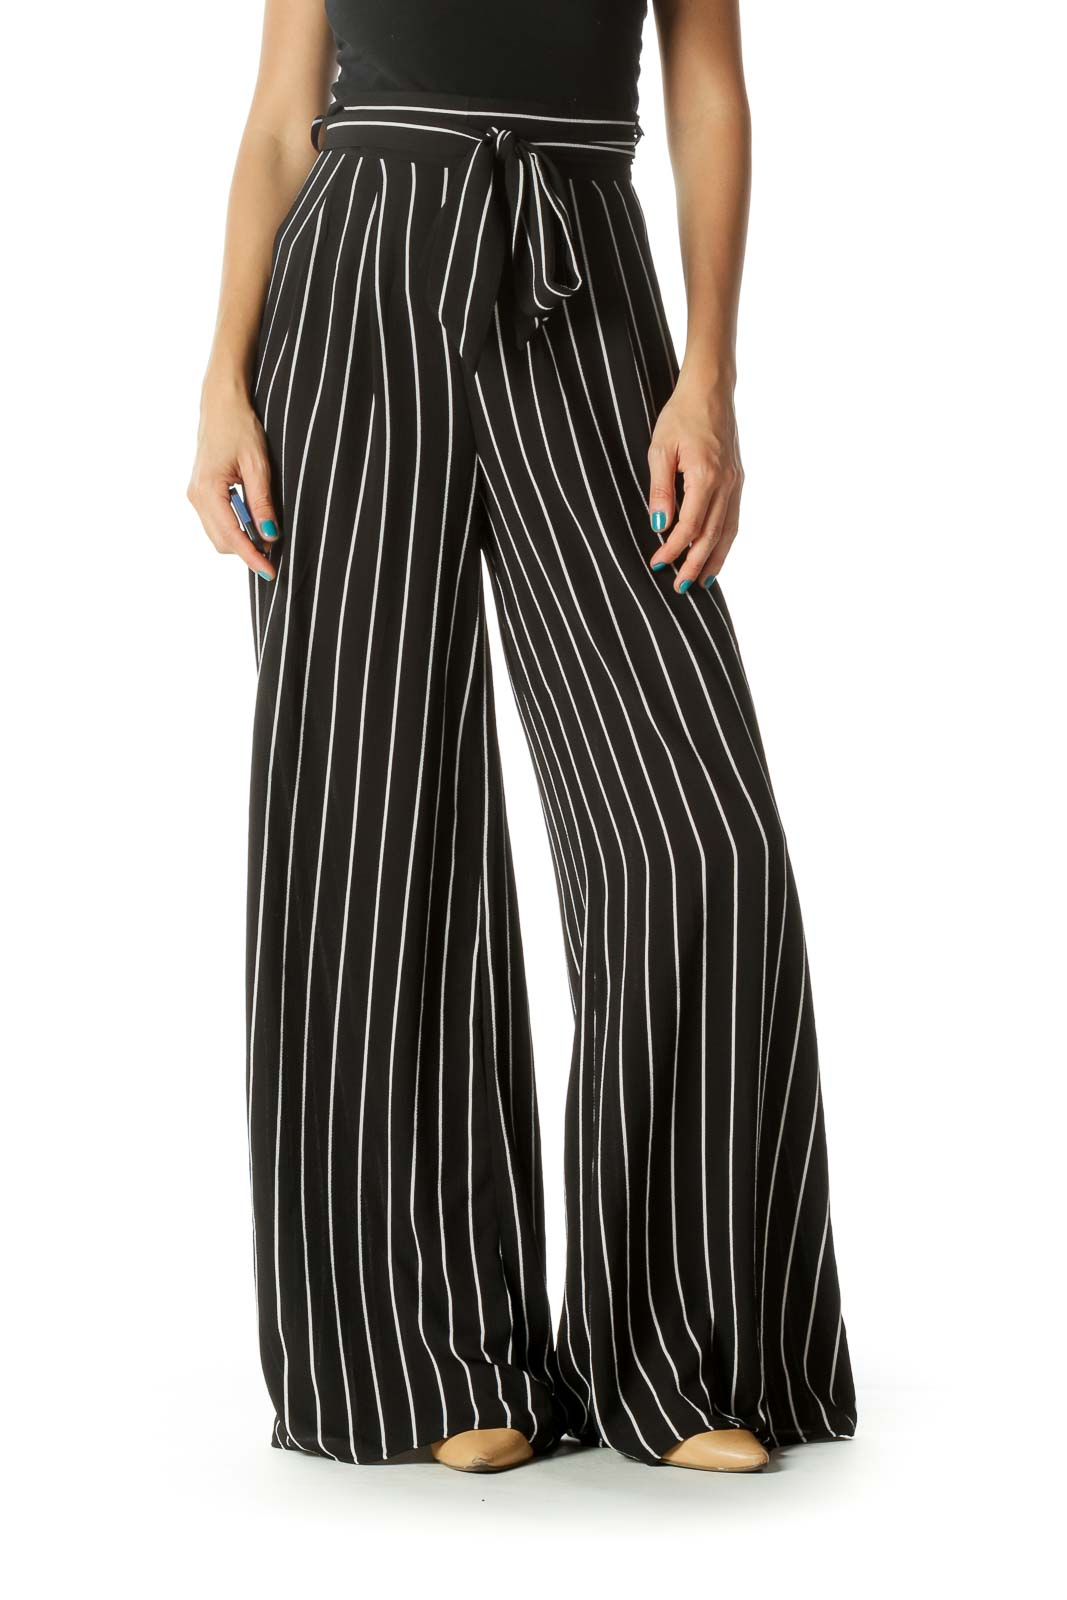 Black & White Waist Tie Zippered Wide-Leg Pants